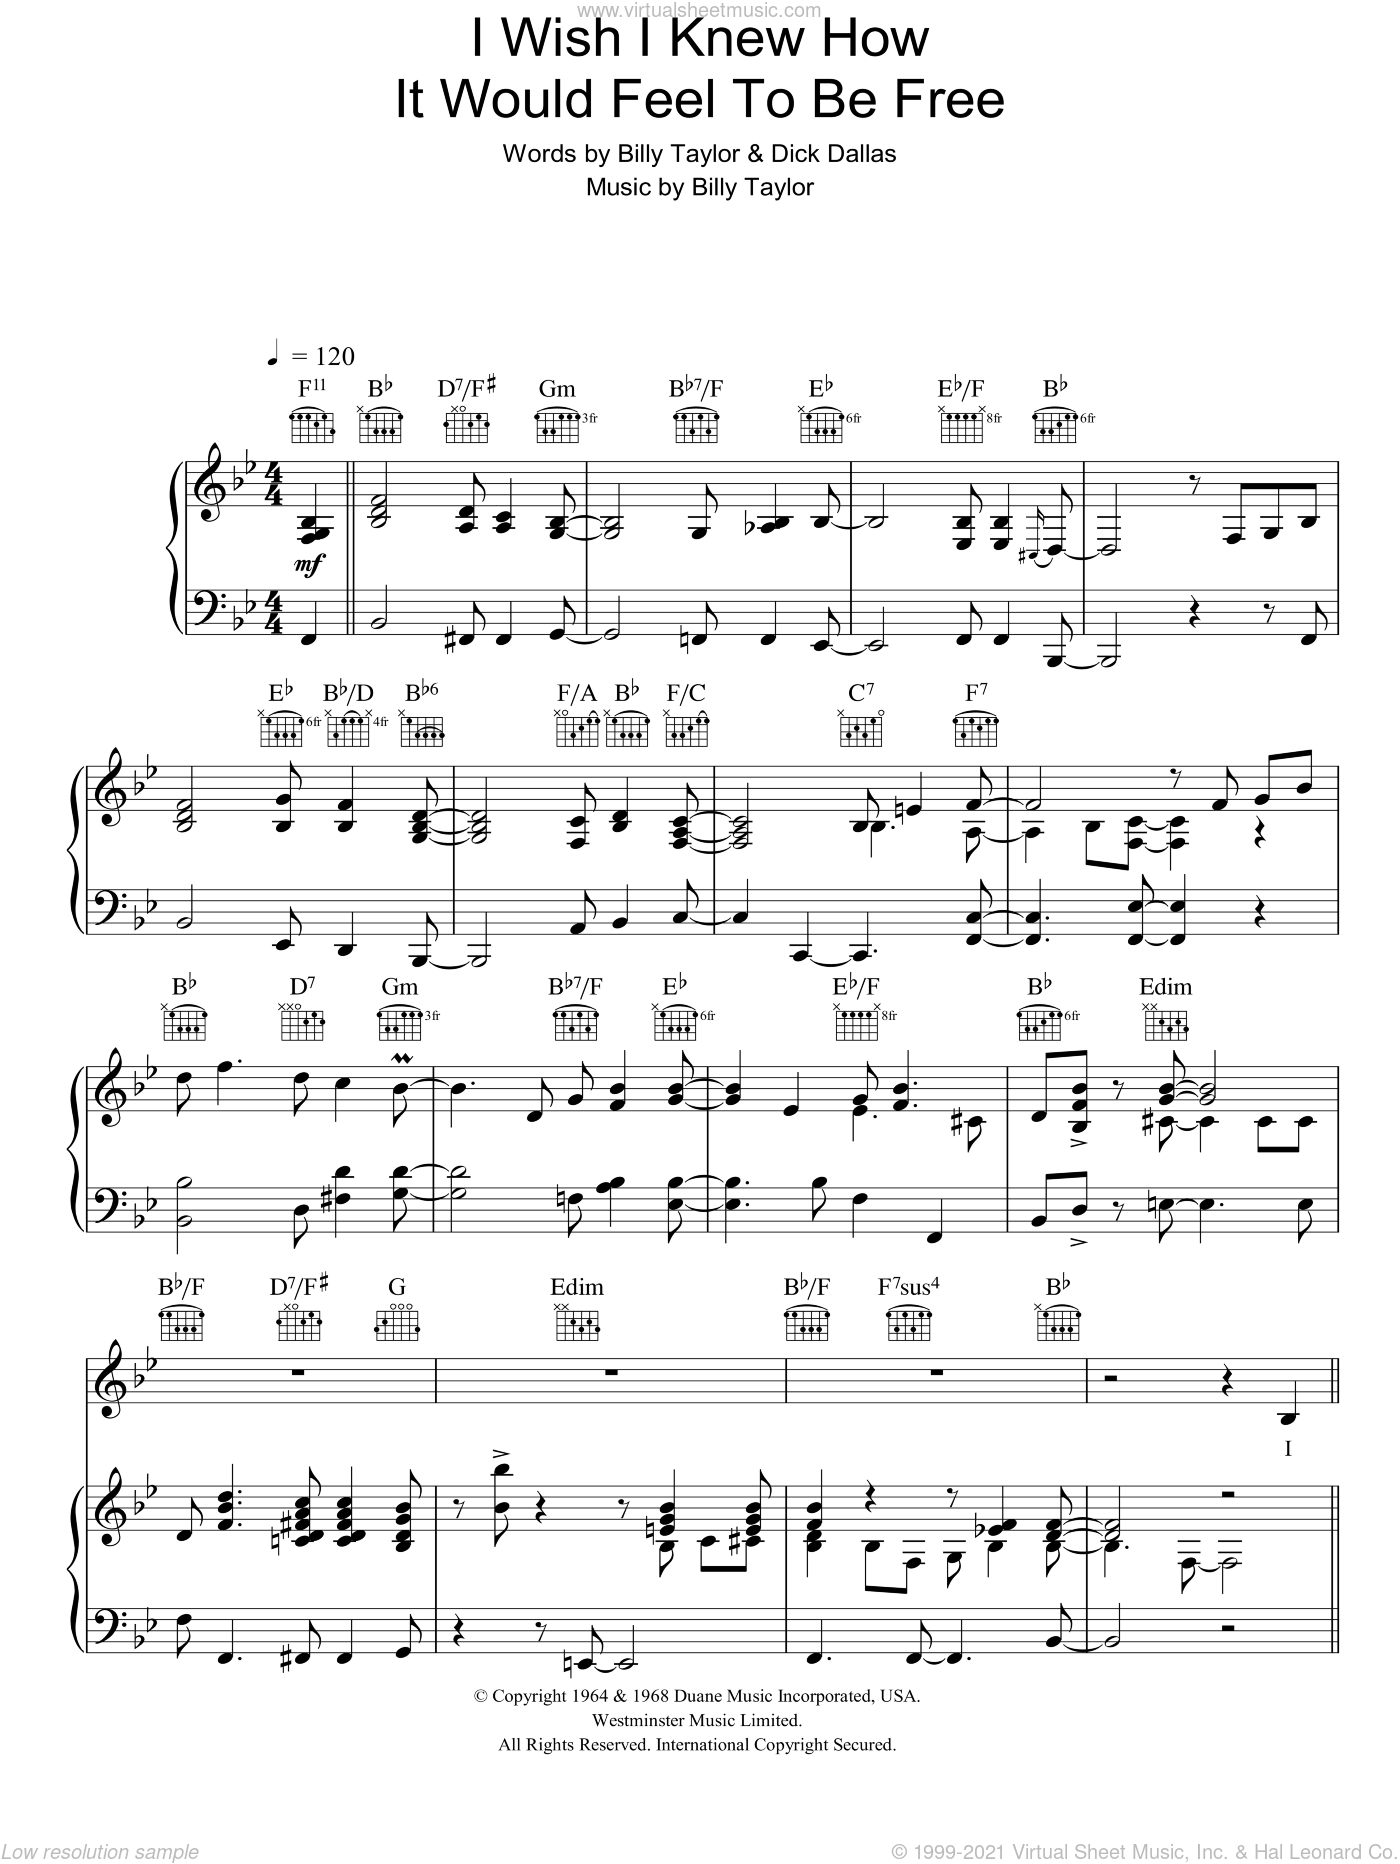 I Wish I Knew How It Would Feel To Be Free sheet music for voice, piano or guitar by Billy Taylor